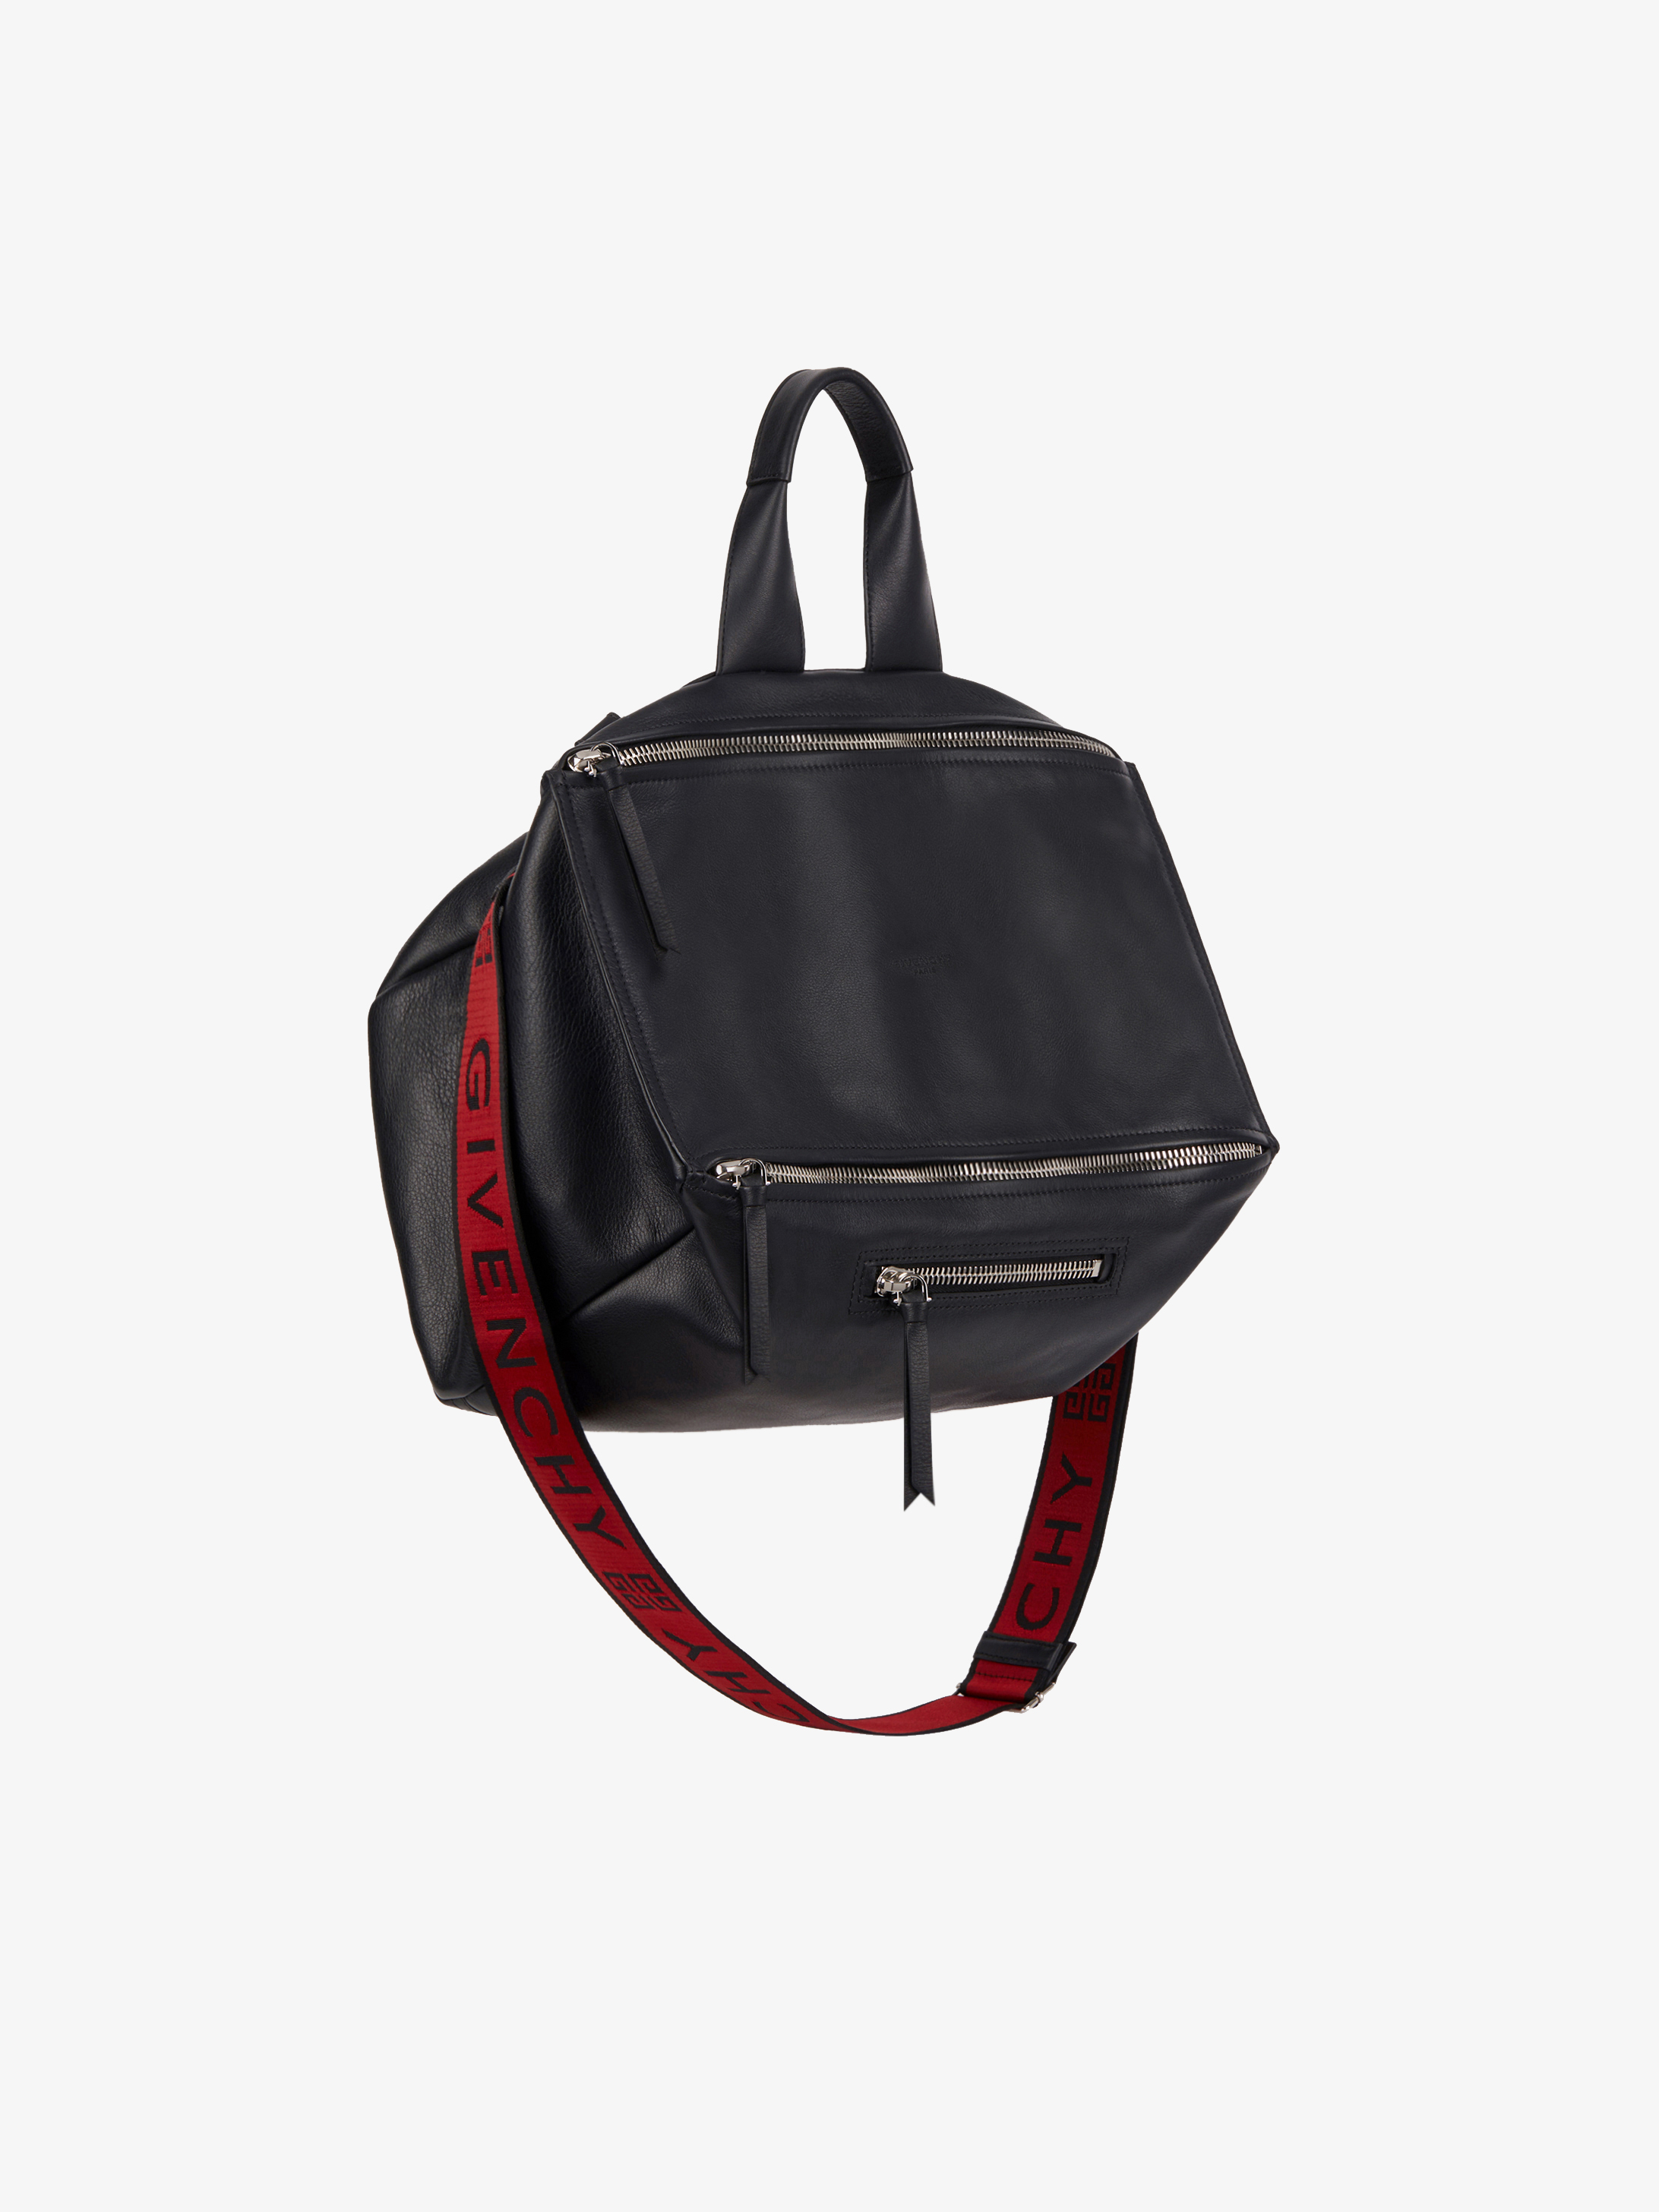 GIVENCHY 4G Pandora messenger bag in leather